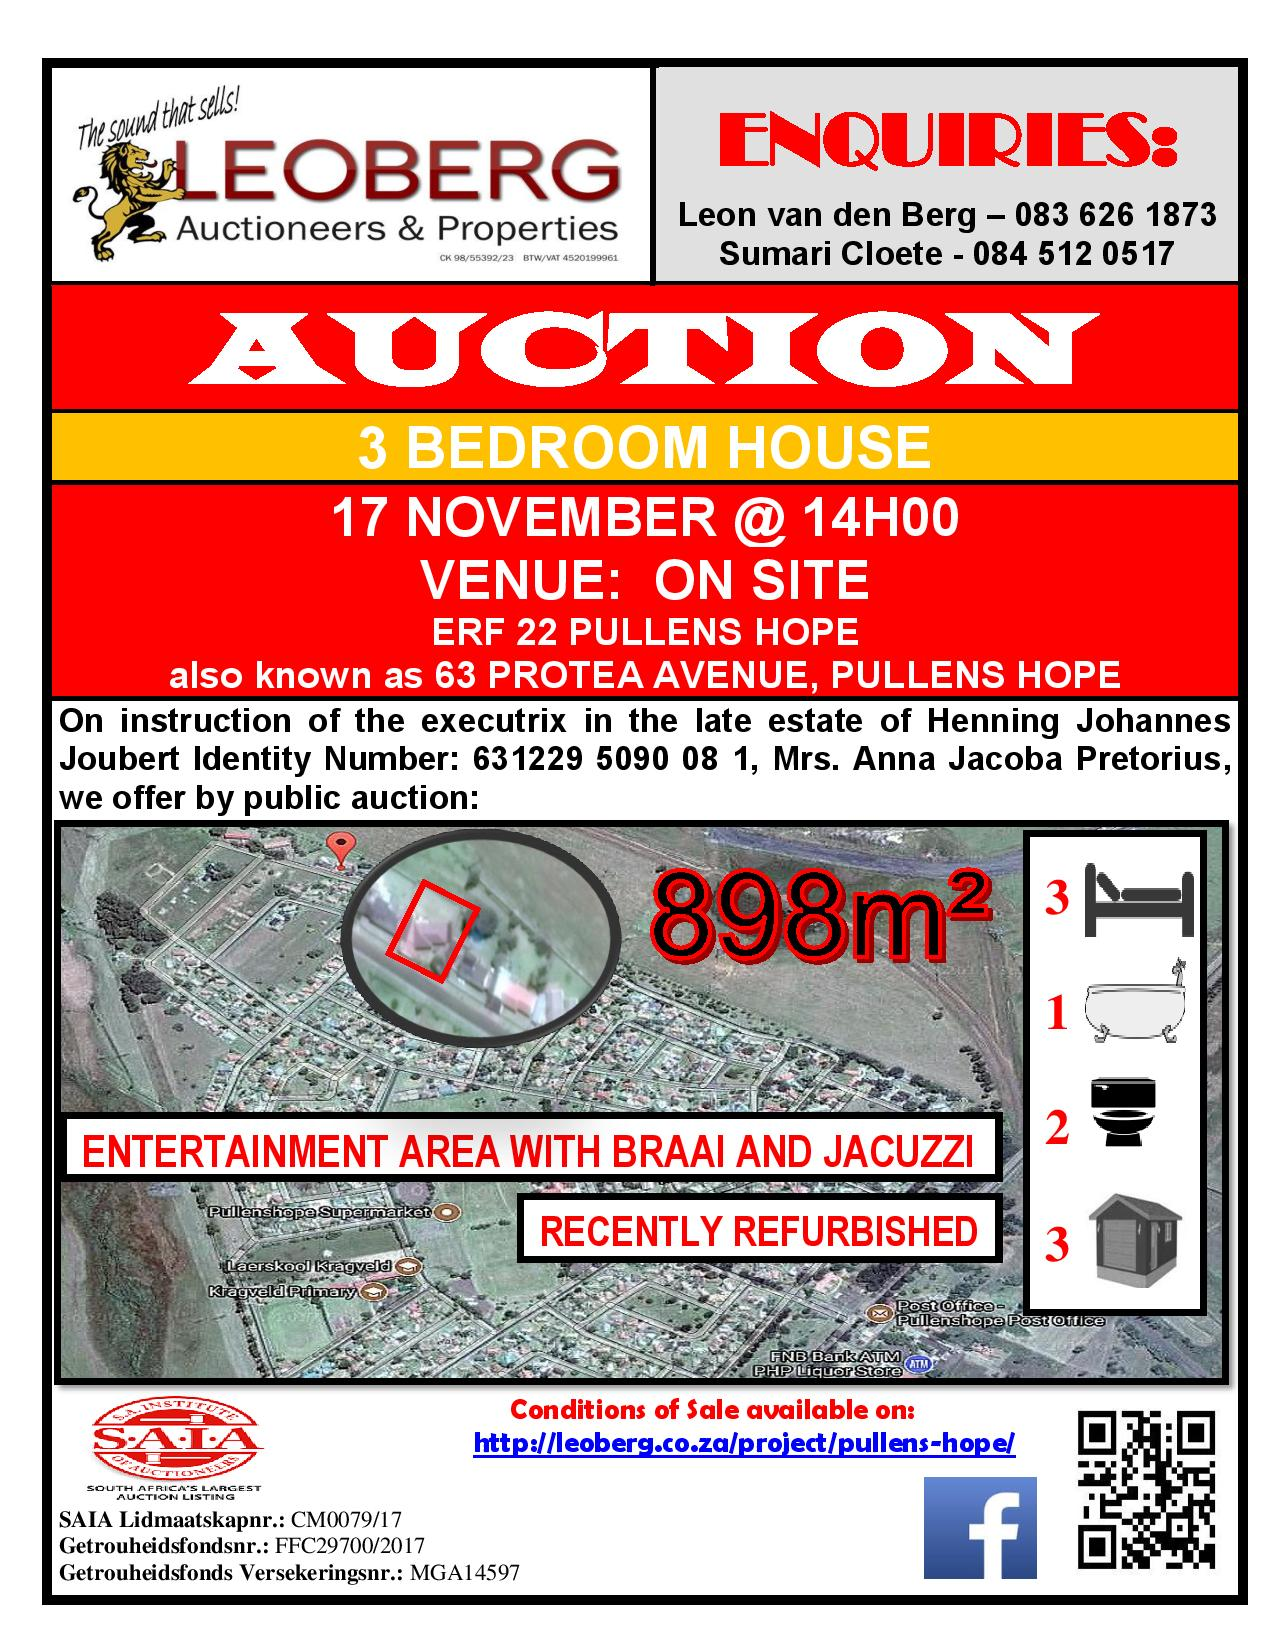 3 Bedroom House on Auction - 17 November 2017 @ 14h00